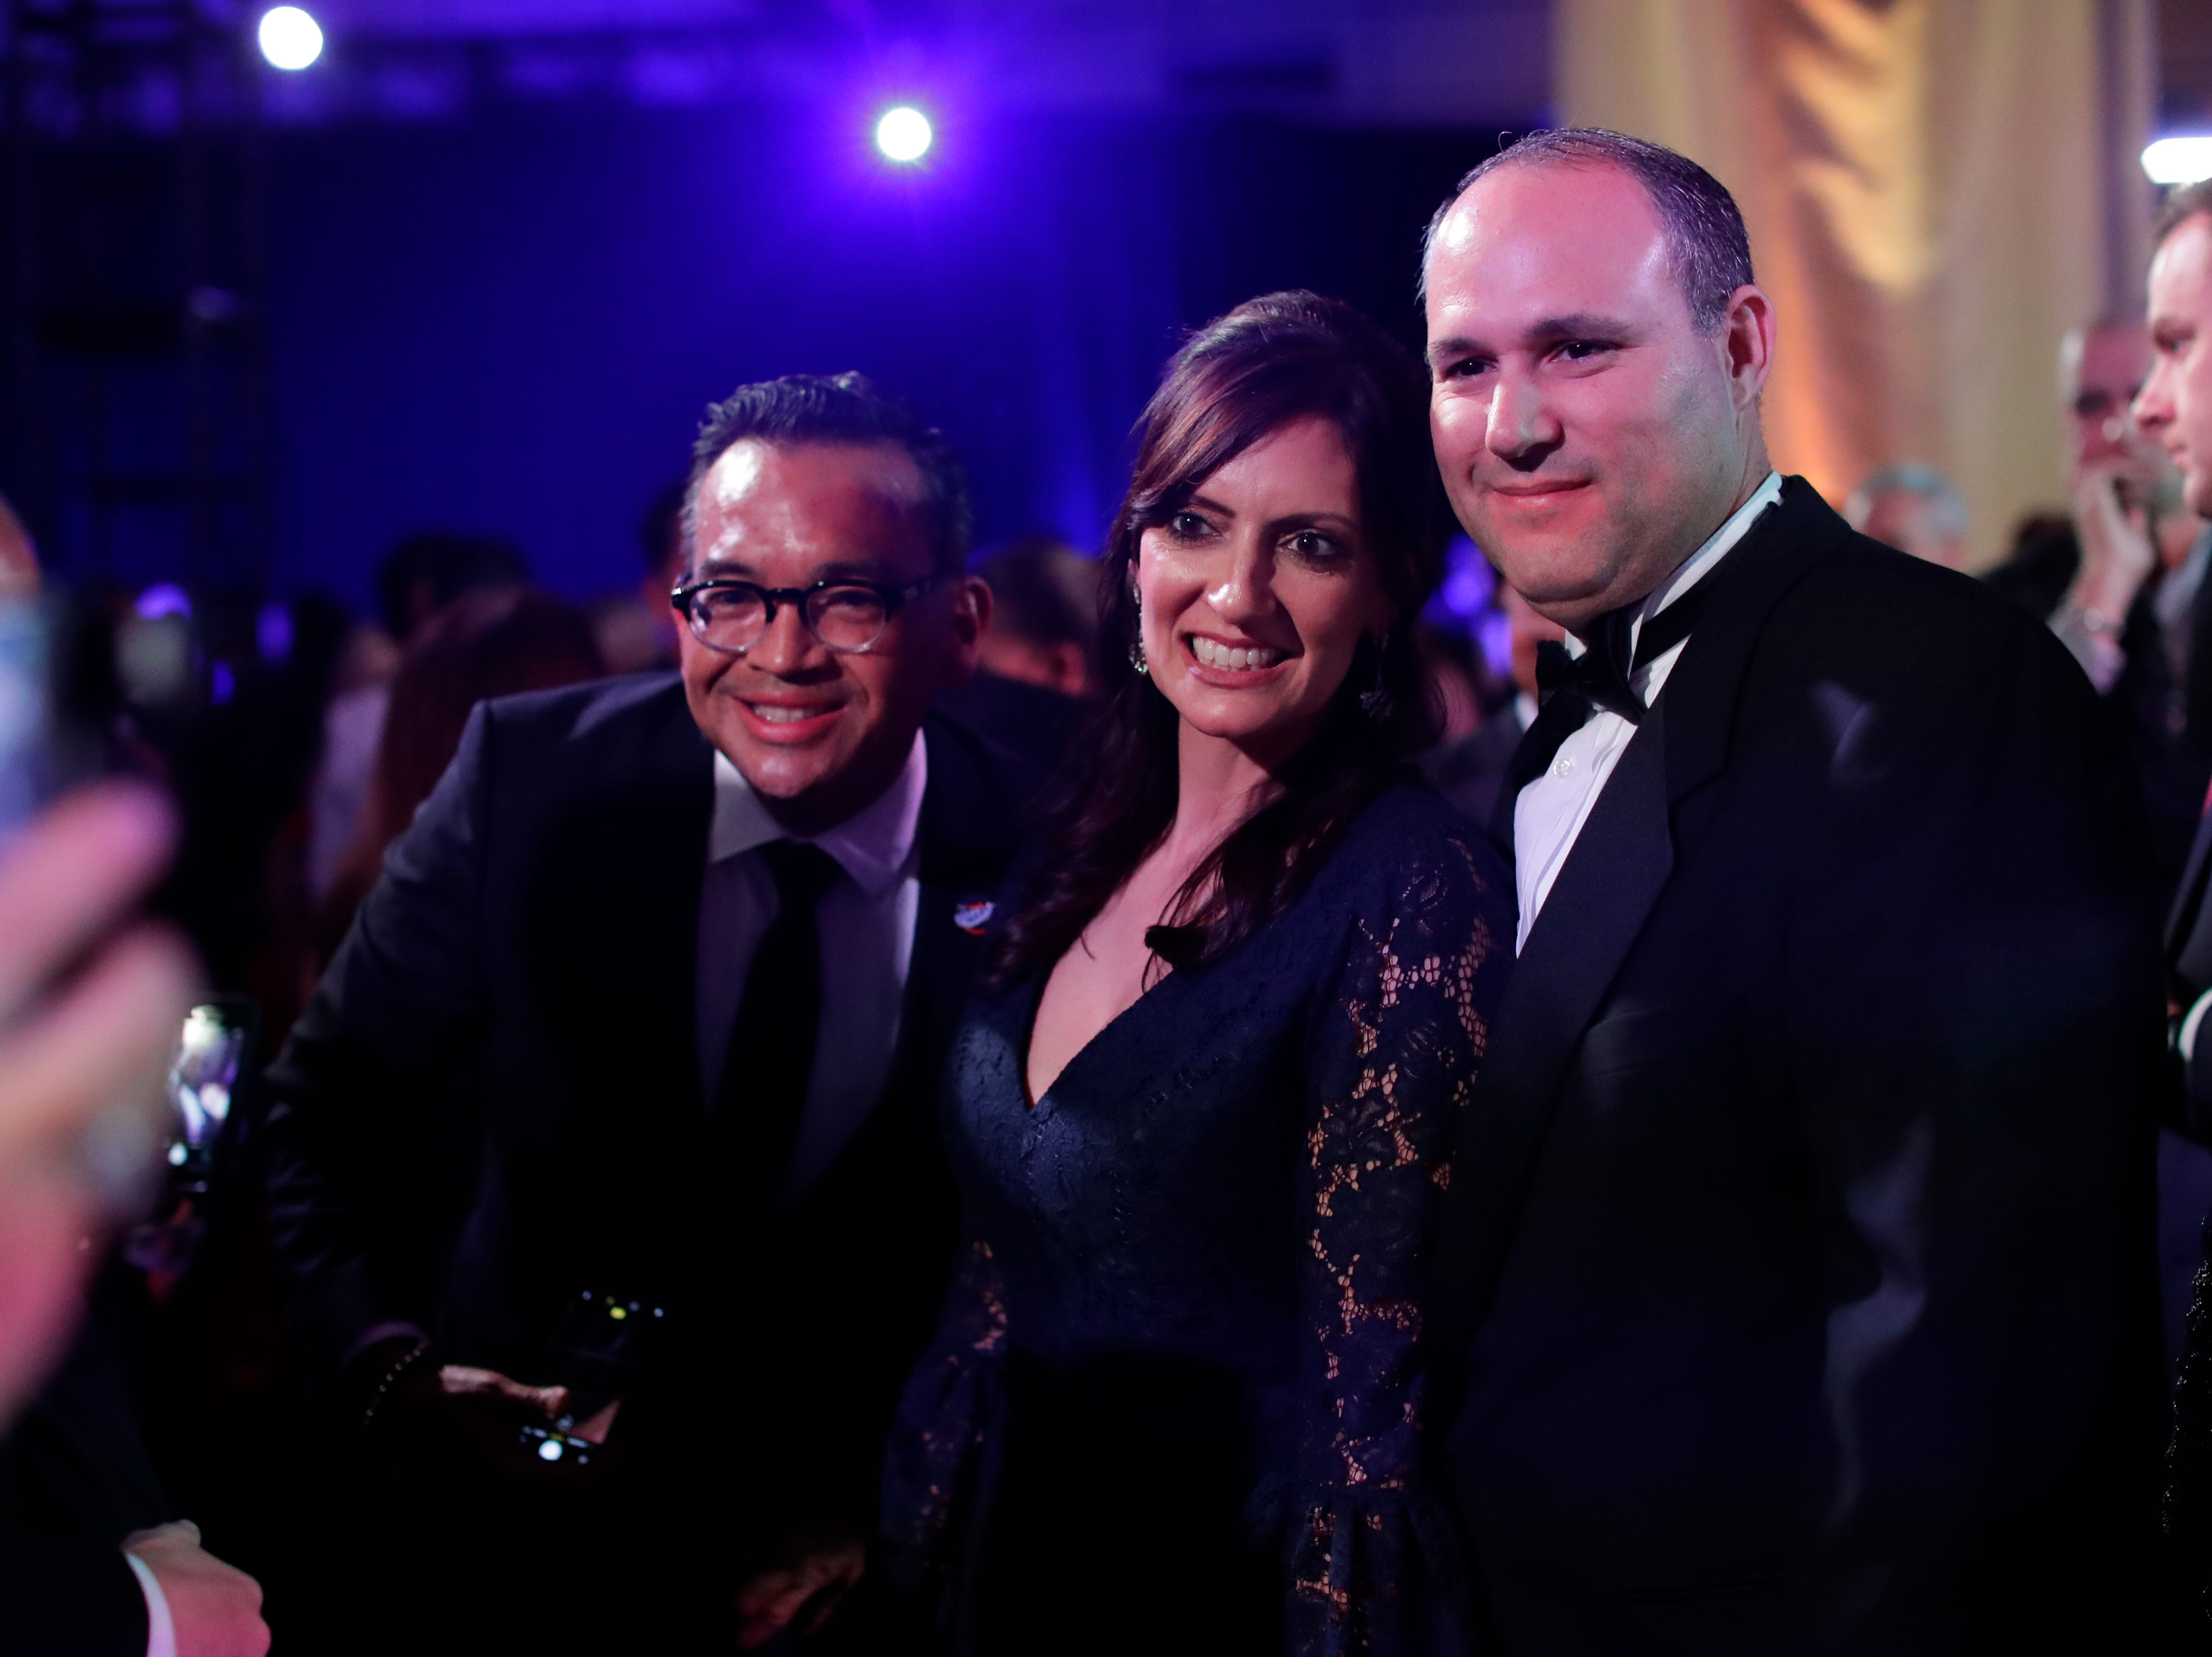 Hundreds of guests from all over Florida attend Florida's 46th Governor's Inaugural Ball at the Tucker Civic Center, Tuesday, Jan. 8, 2019. Lt. Gov. Jeanette Nunez, center, poses for a photo with her husband, Adrian Nunez, right, and a guest at the ball.